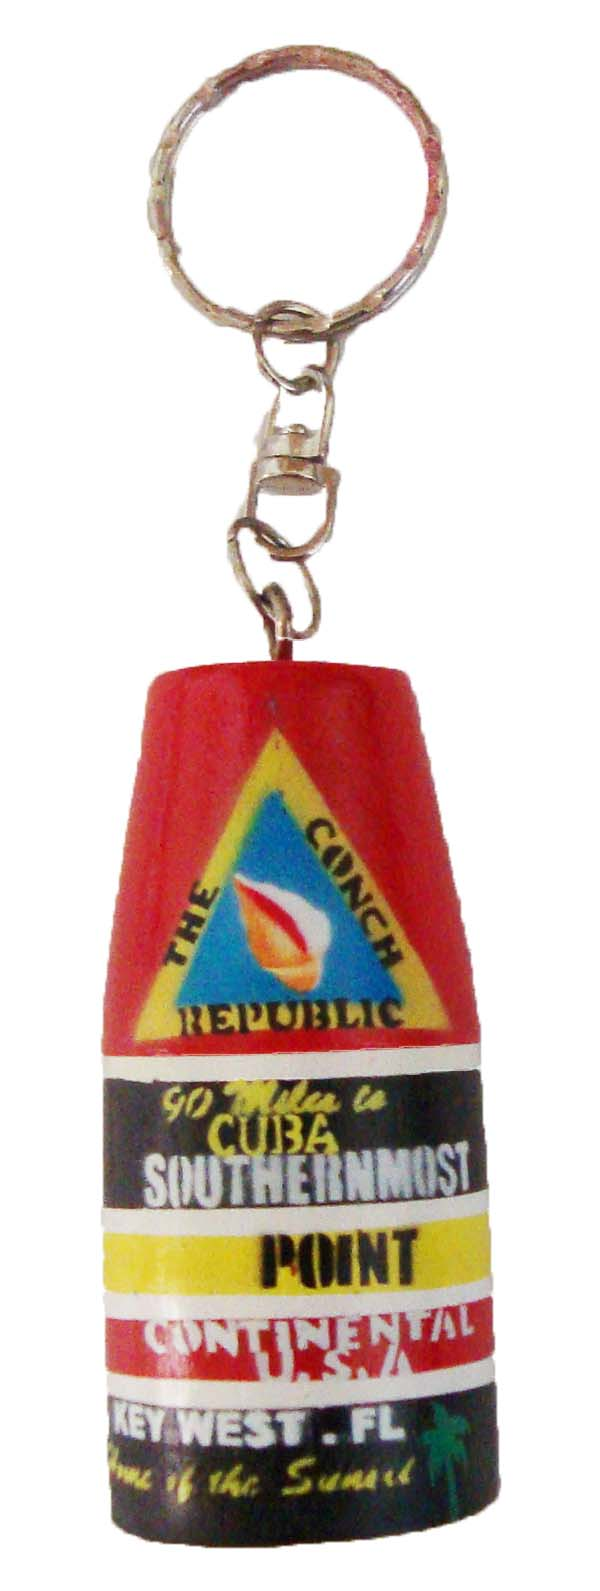 Key Chain WOOD-BUOY SOUTHERMOST - UOM: PC - Minimum Order:12